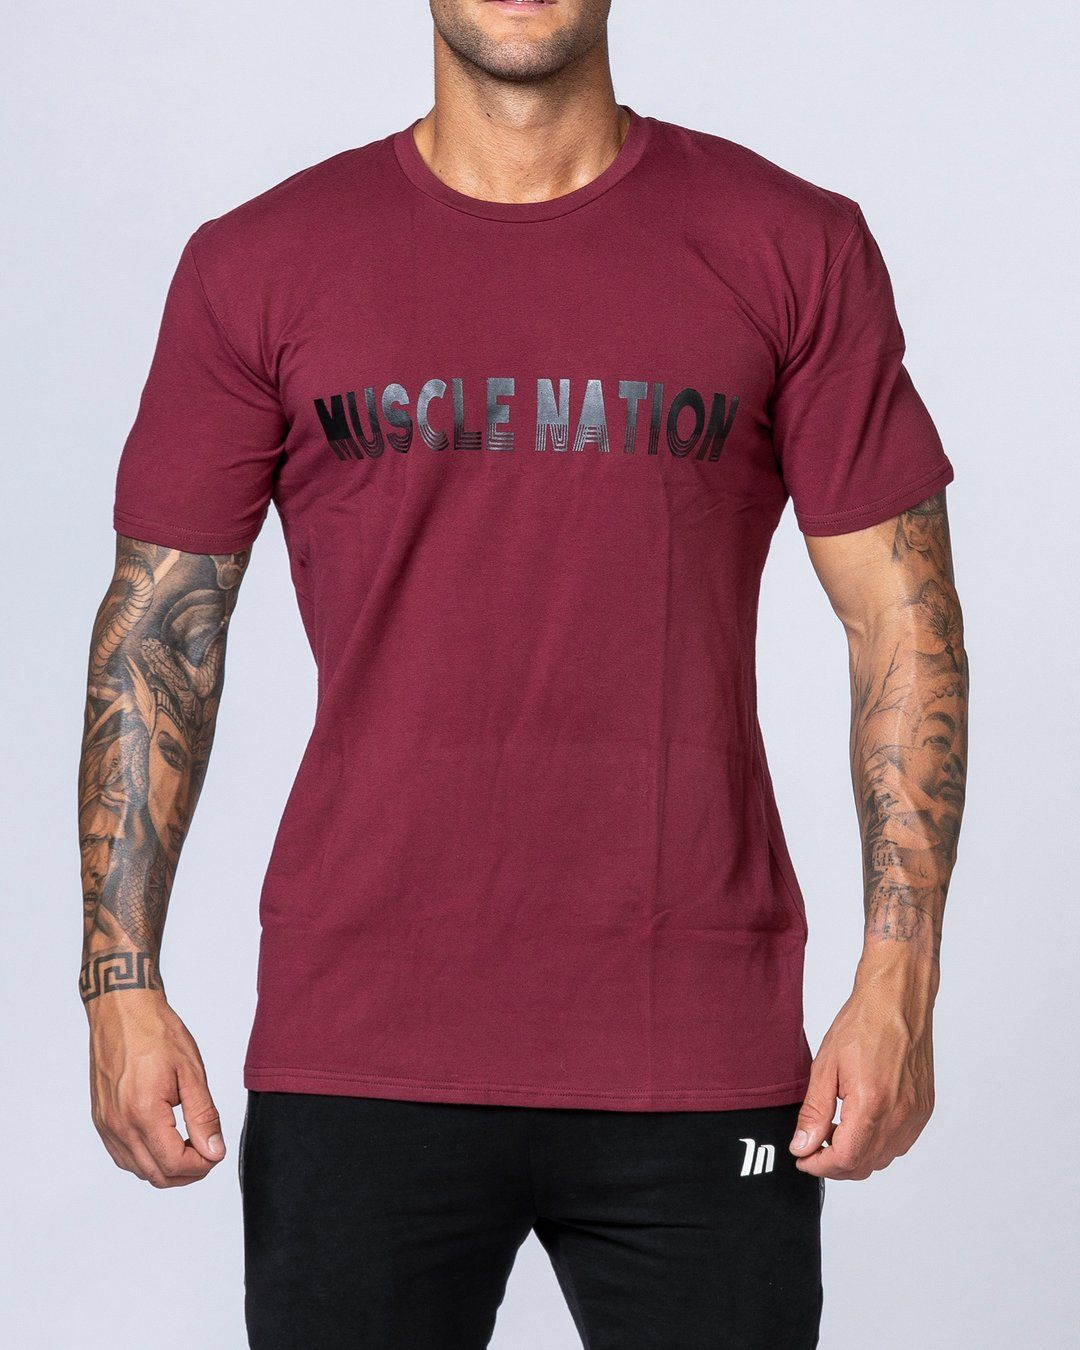 Muscle Nation Retro Tee - Burgundy